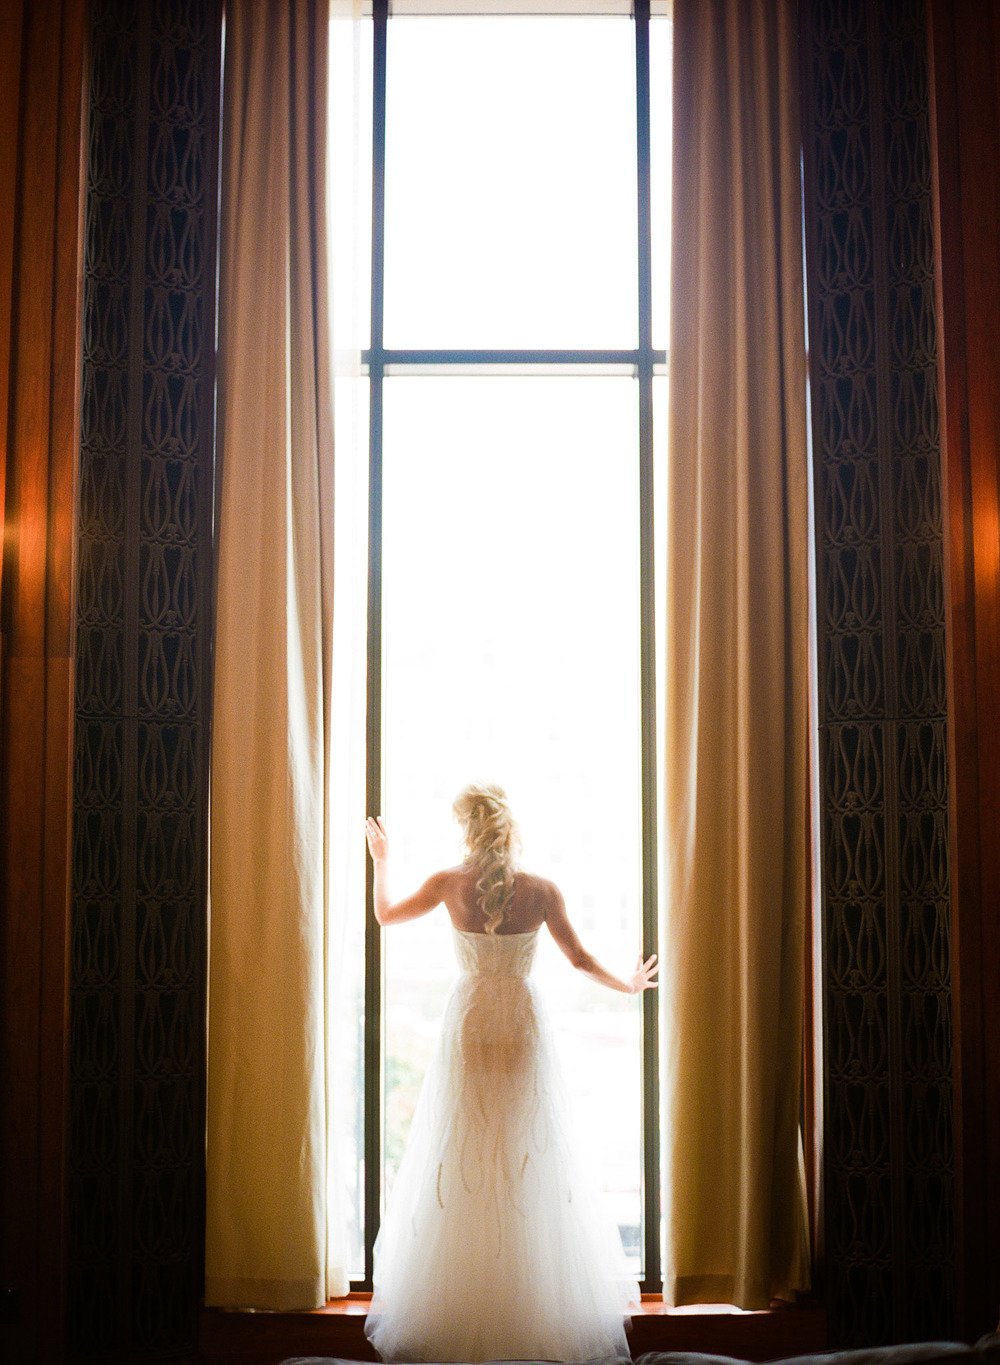 top destination wedding photographer Lexia Frank photographs the wedding of NFL football star Green Bay Packer Bryan Bulaga's wedding at the hilton in milwaukee as the bride stands in the doorway